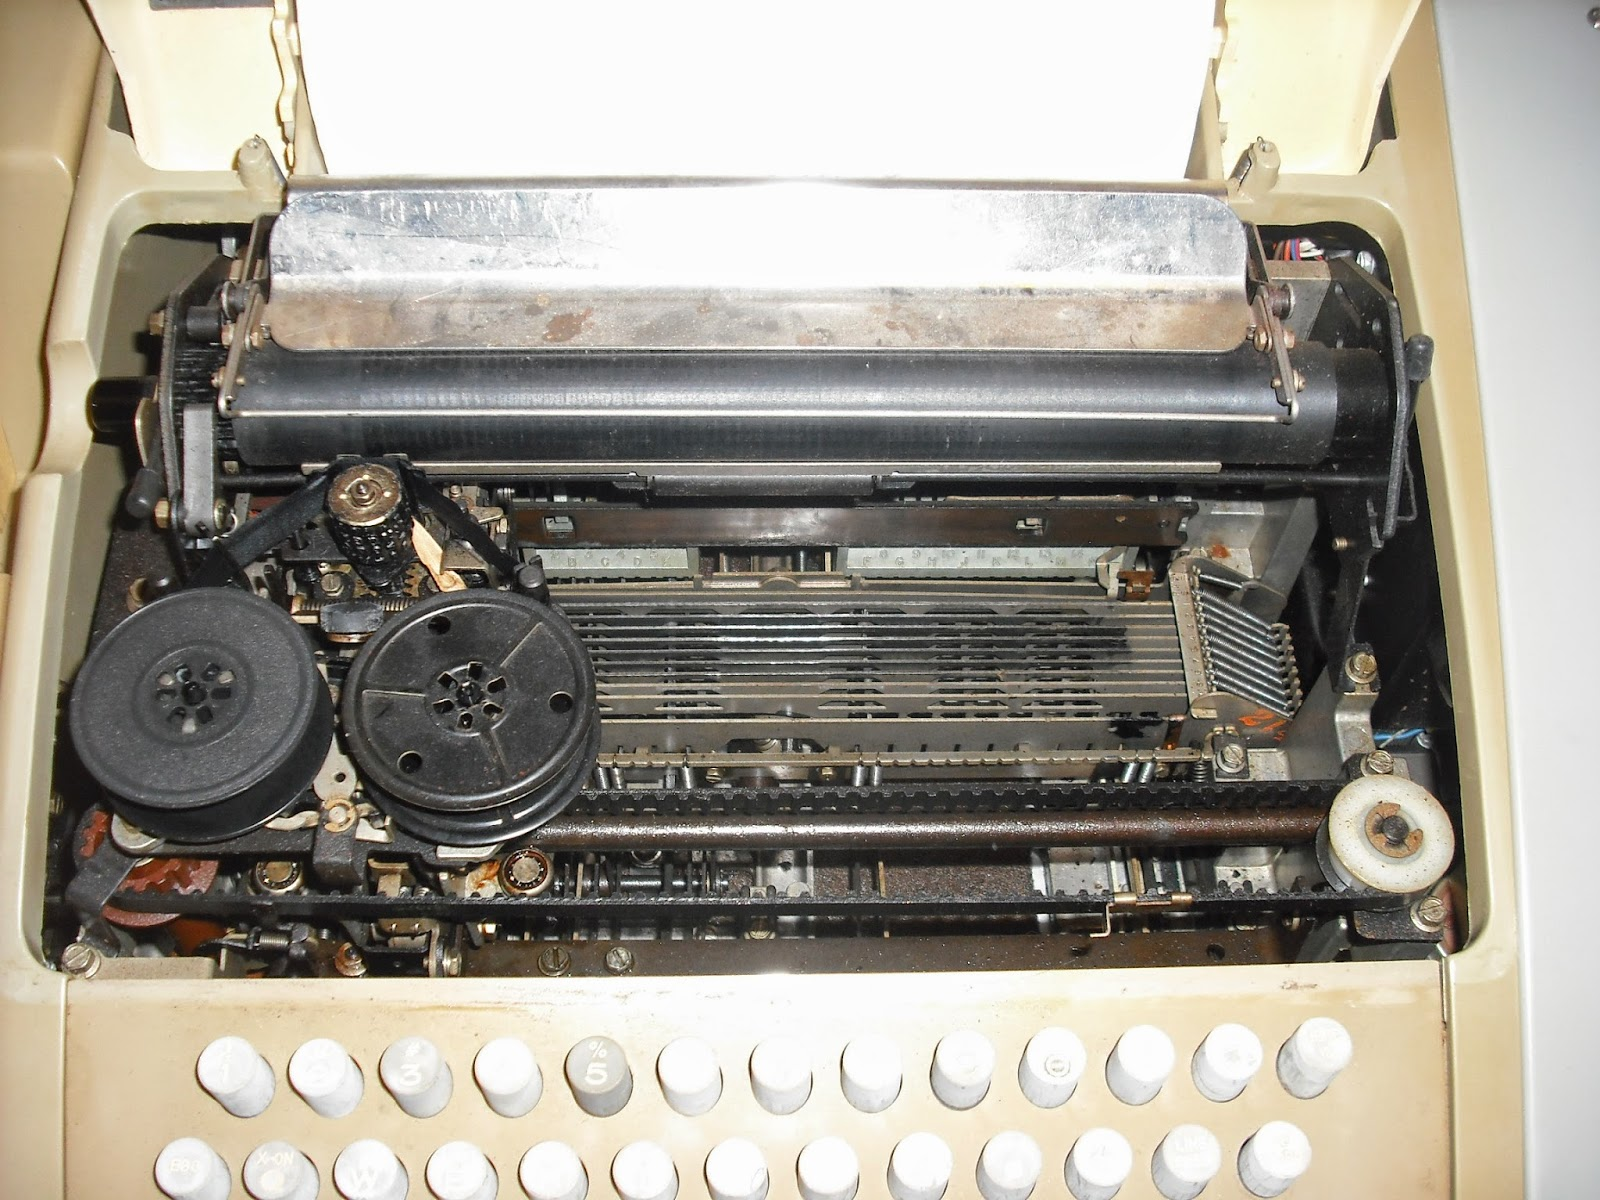 ASR 33 Teletype inside look